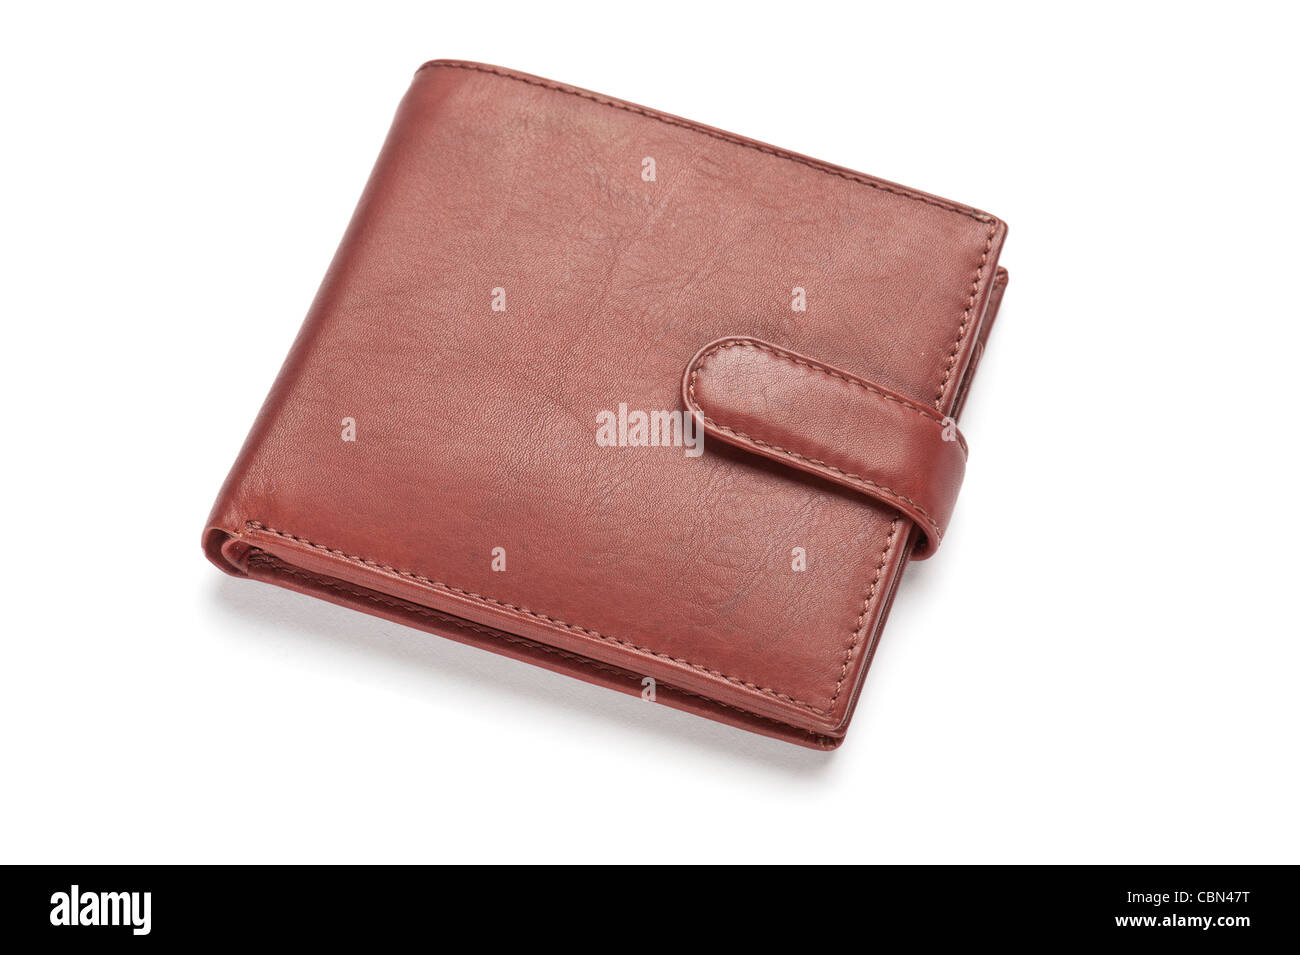 A brown leather wallet, close-up - Stock Image